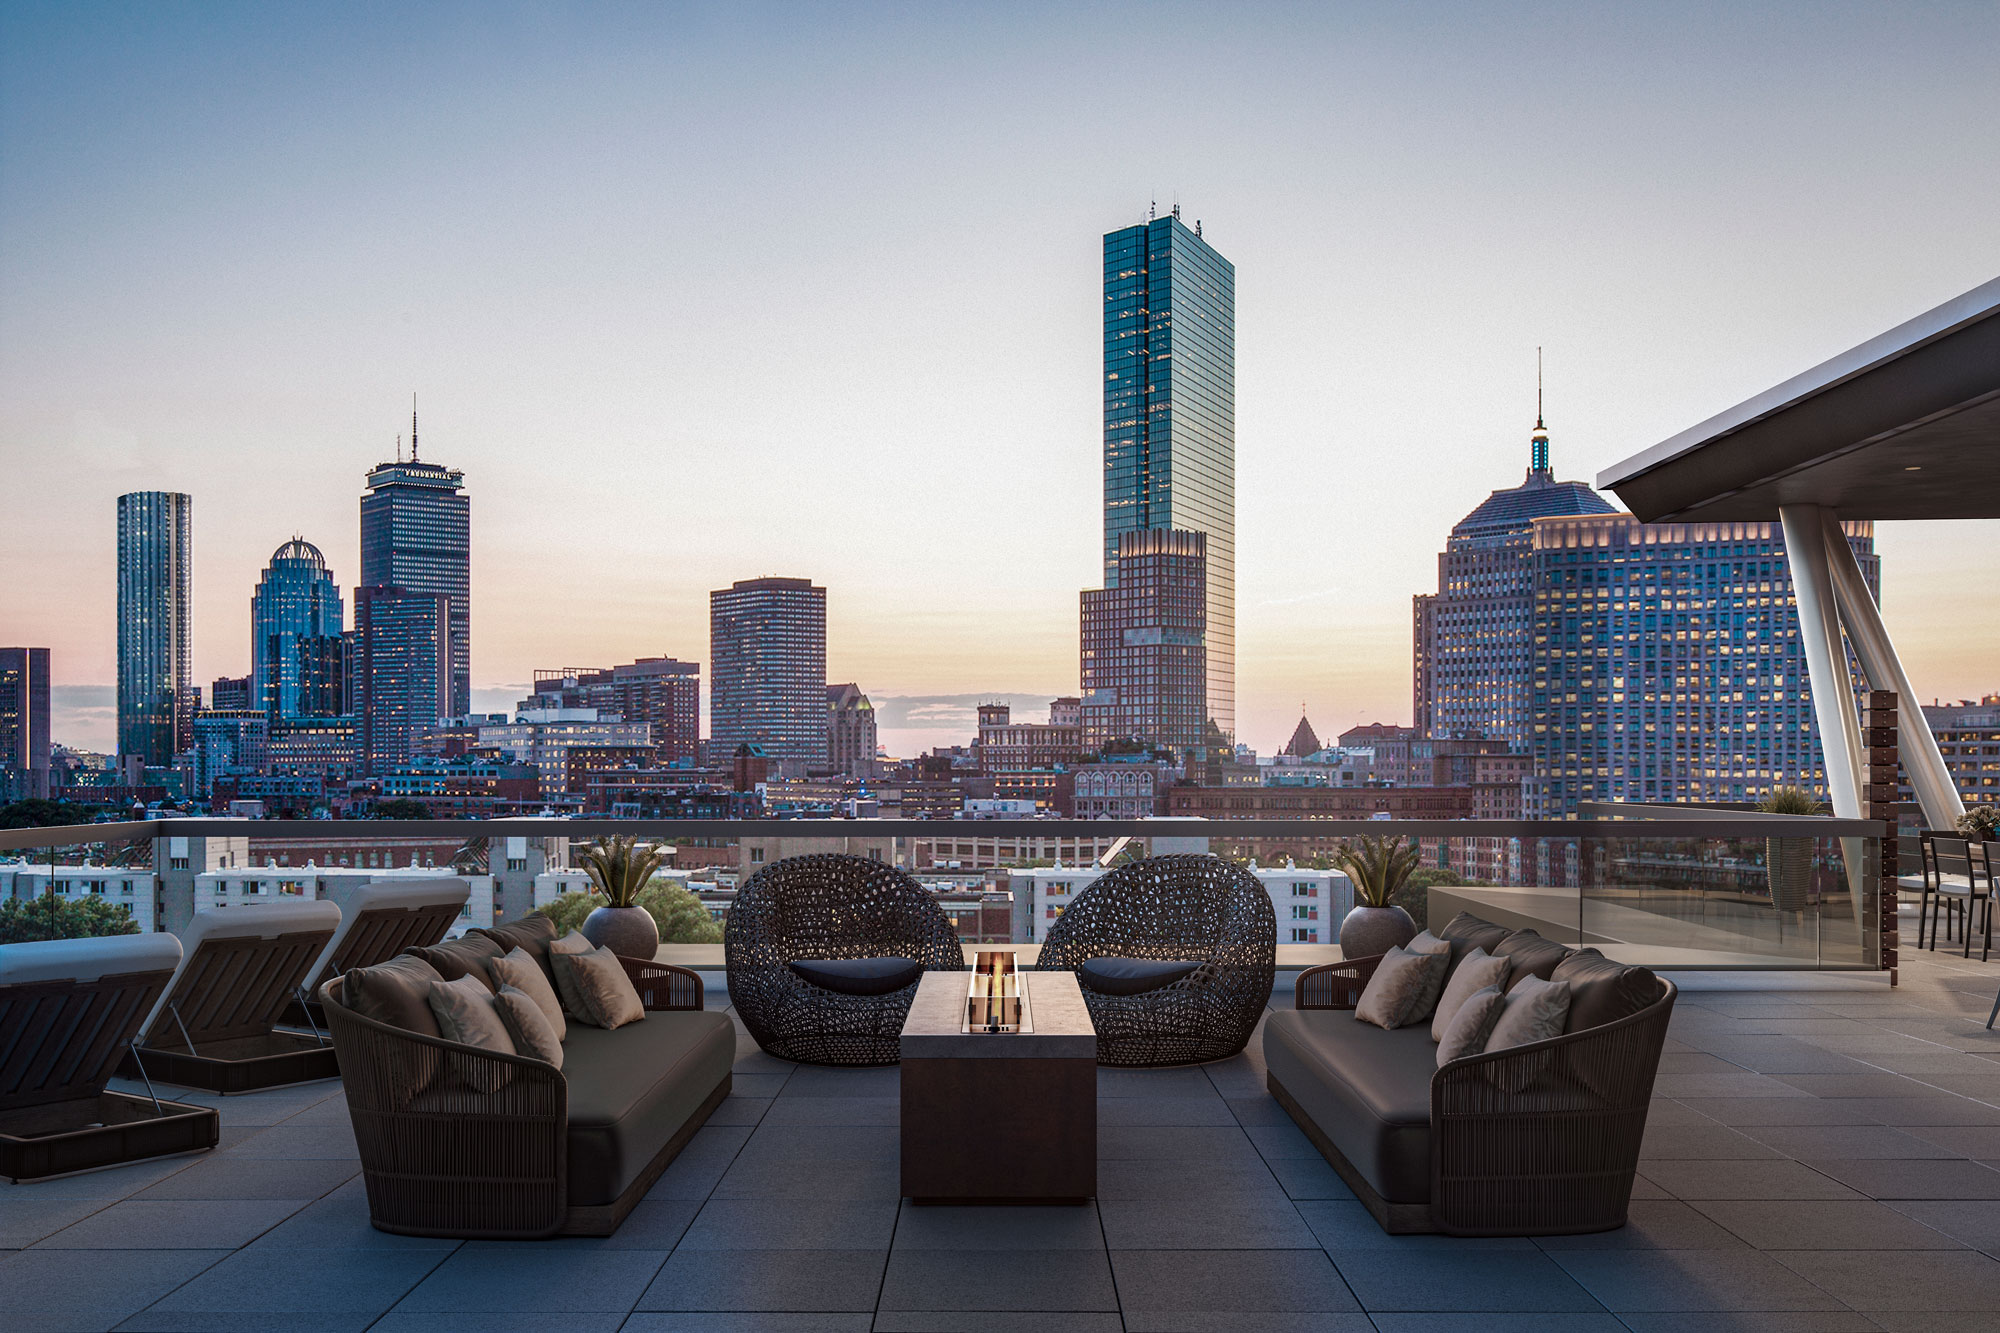 Rooftop patio with couches and chairs overlooking downtown Boston